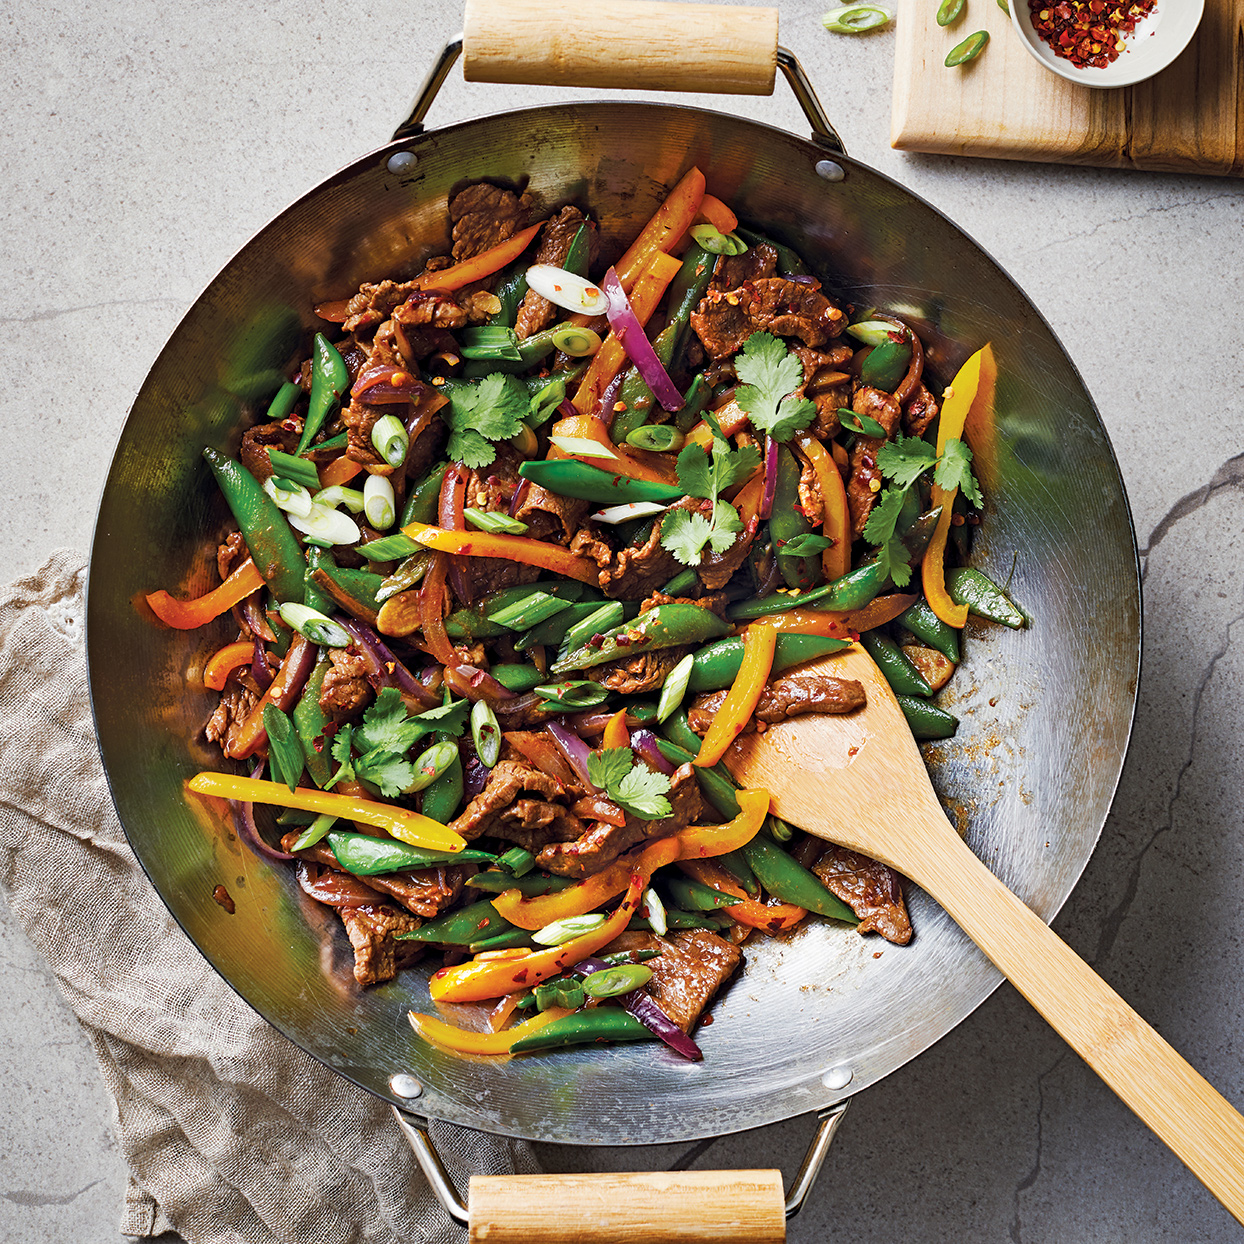 24 Easy 30-Minute Stir-Fry Recipes to Spice Up Busy Nights